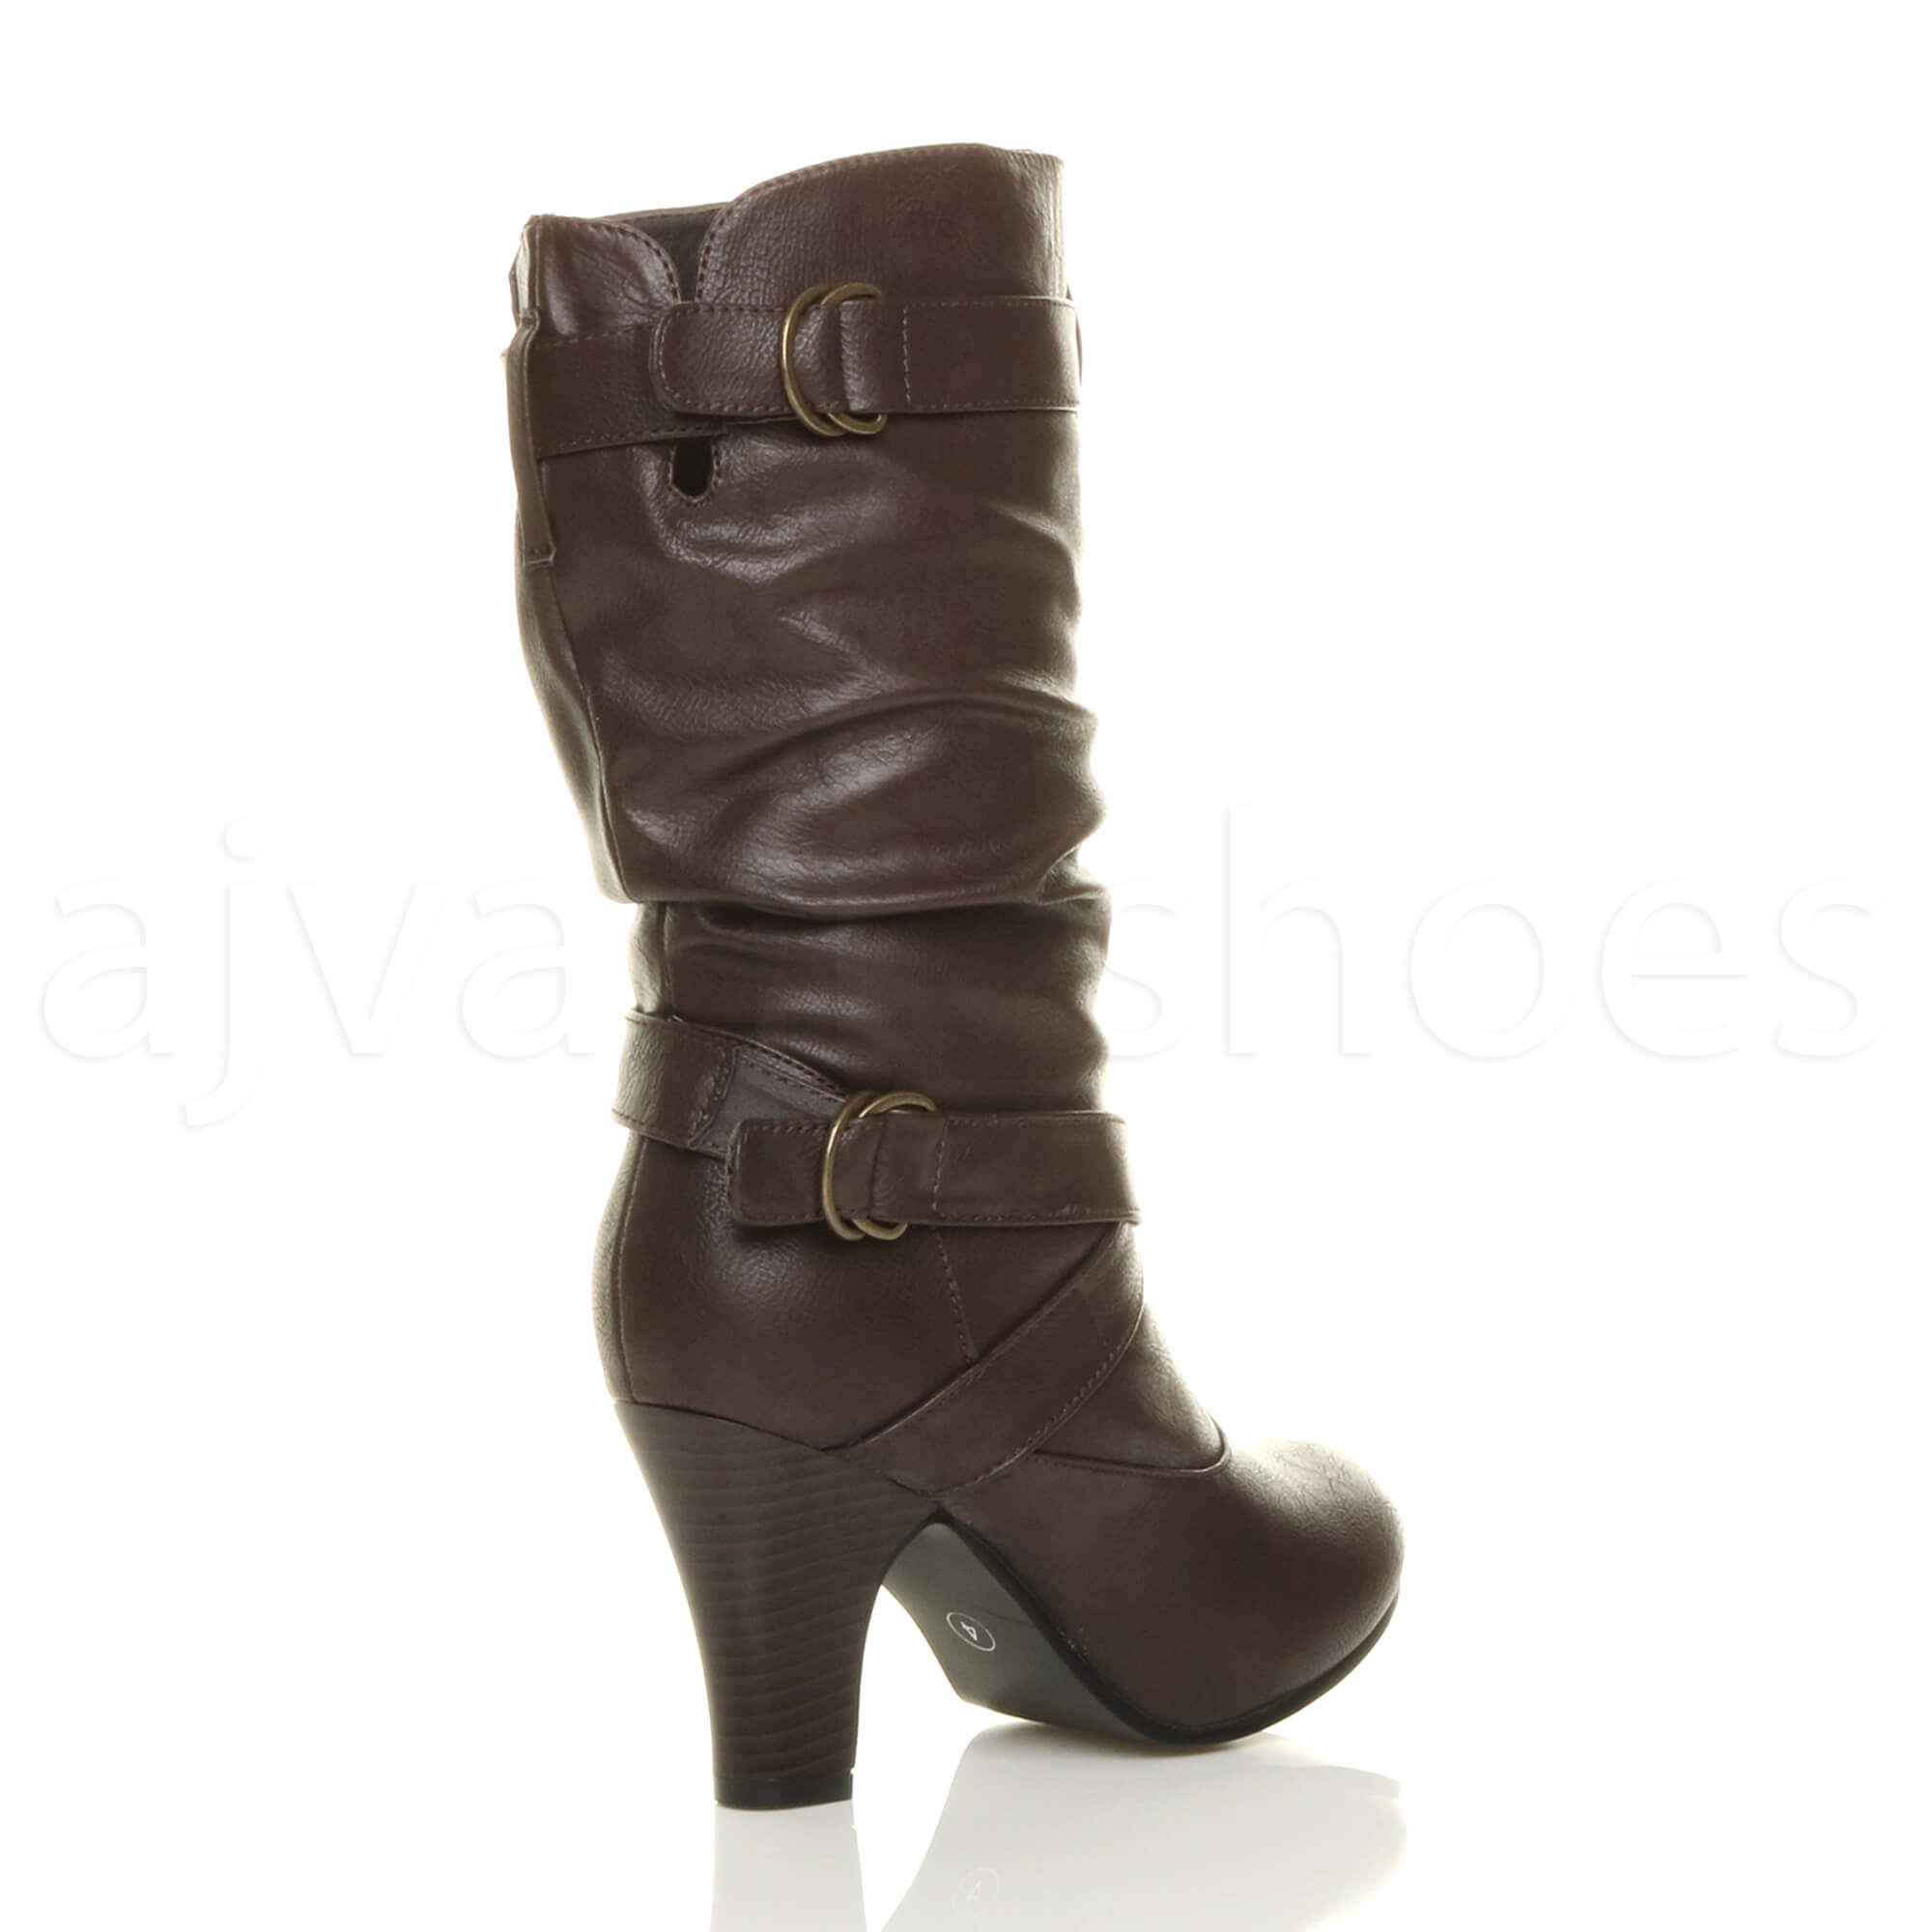 8b2e414833d0 WOMENS LADIES BUCKLE BLOCK MID HIGH HEEL ZIP RUCHED SLOUCH CALF ...